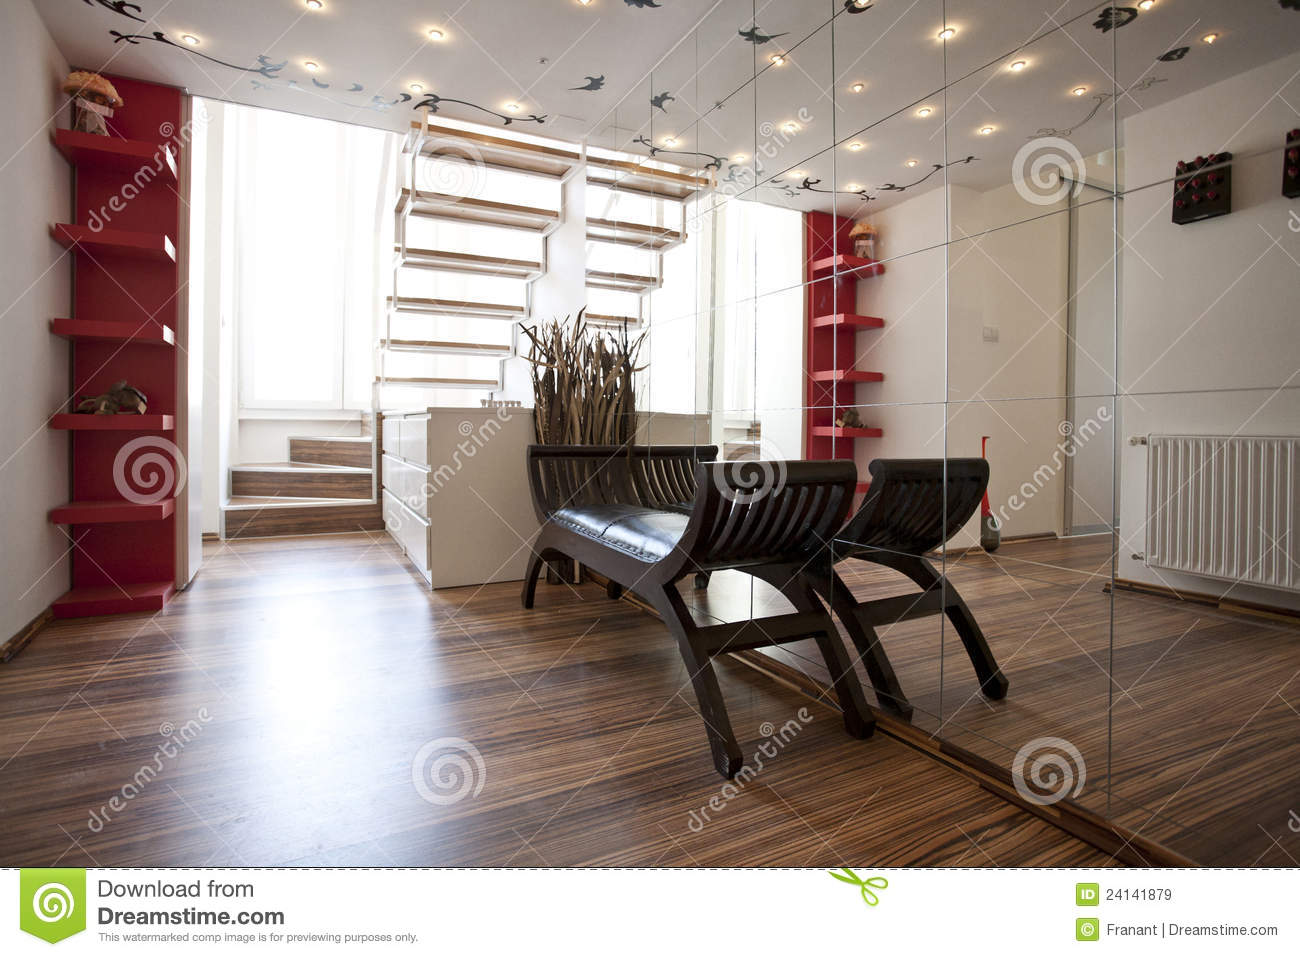 Home lobby interior design royalty free stock images for Image of interior design